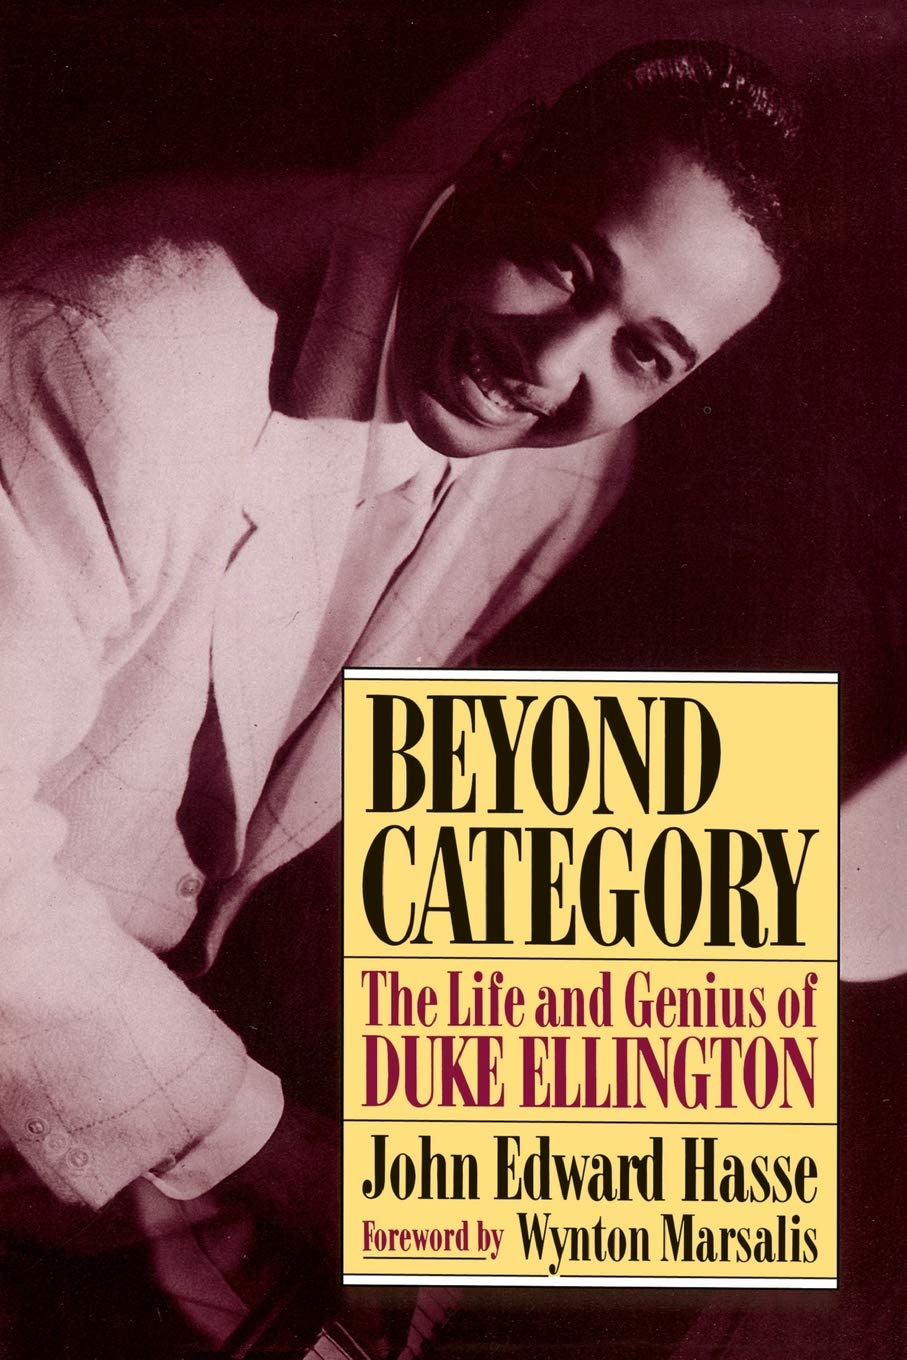 beyond category cover.jpg